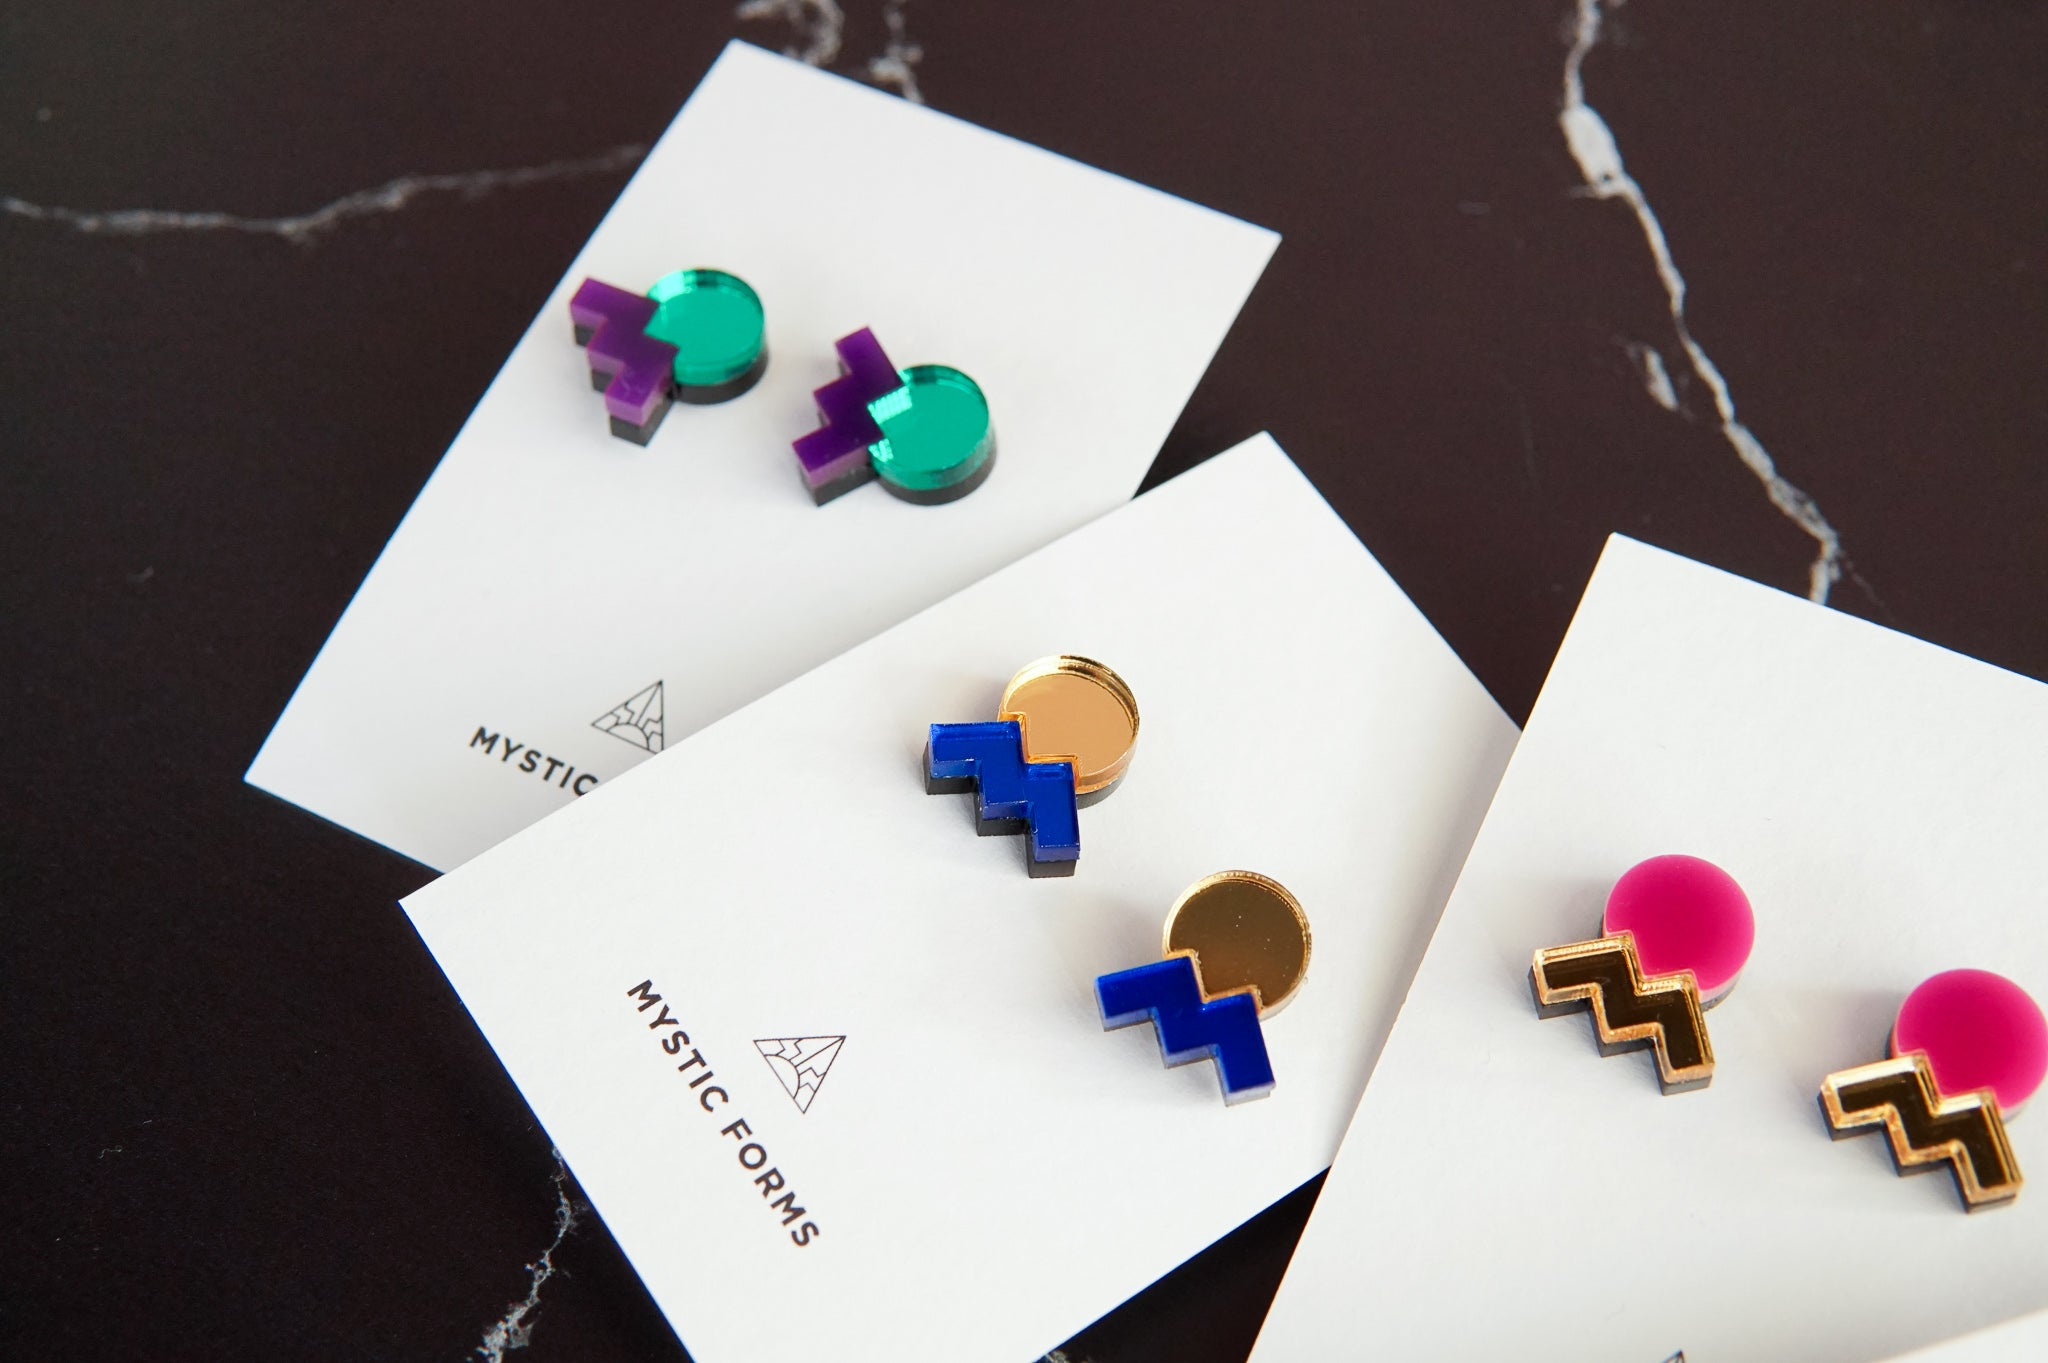 Mystic Forms: Form 013 Studs